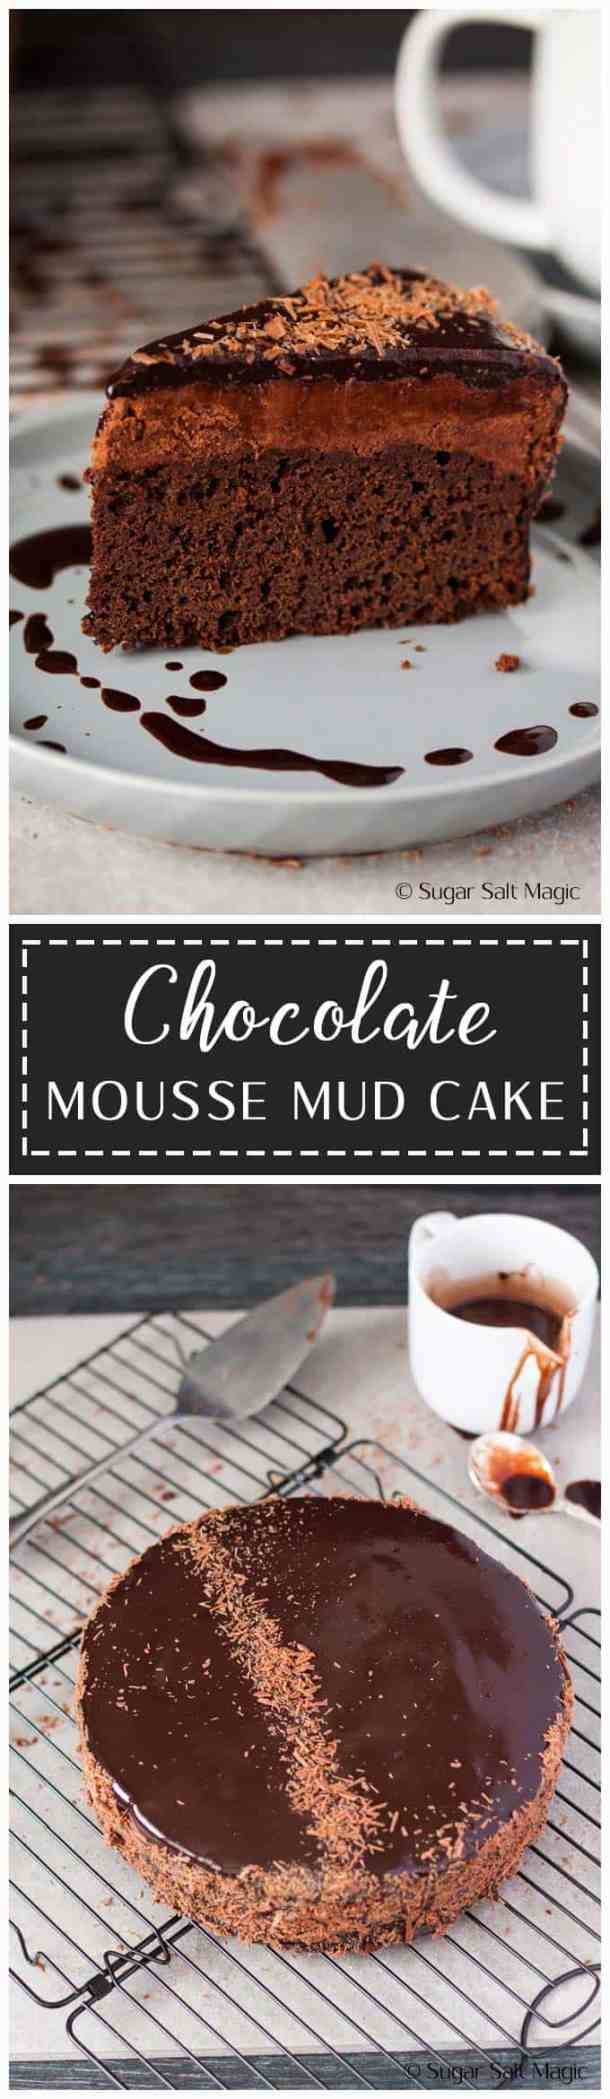 Chocolate Mousse Mud Cake. This is a decadent Chocolate Mud Cake topped with a layer of luxurious mousse and a glistening chocolate glaze